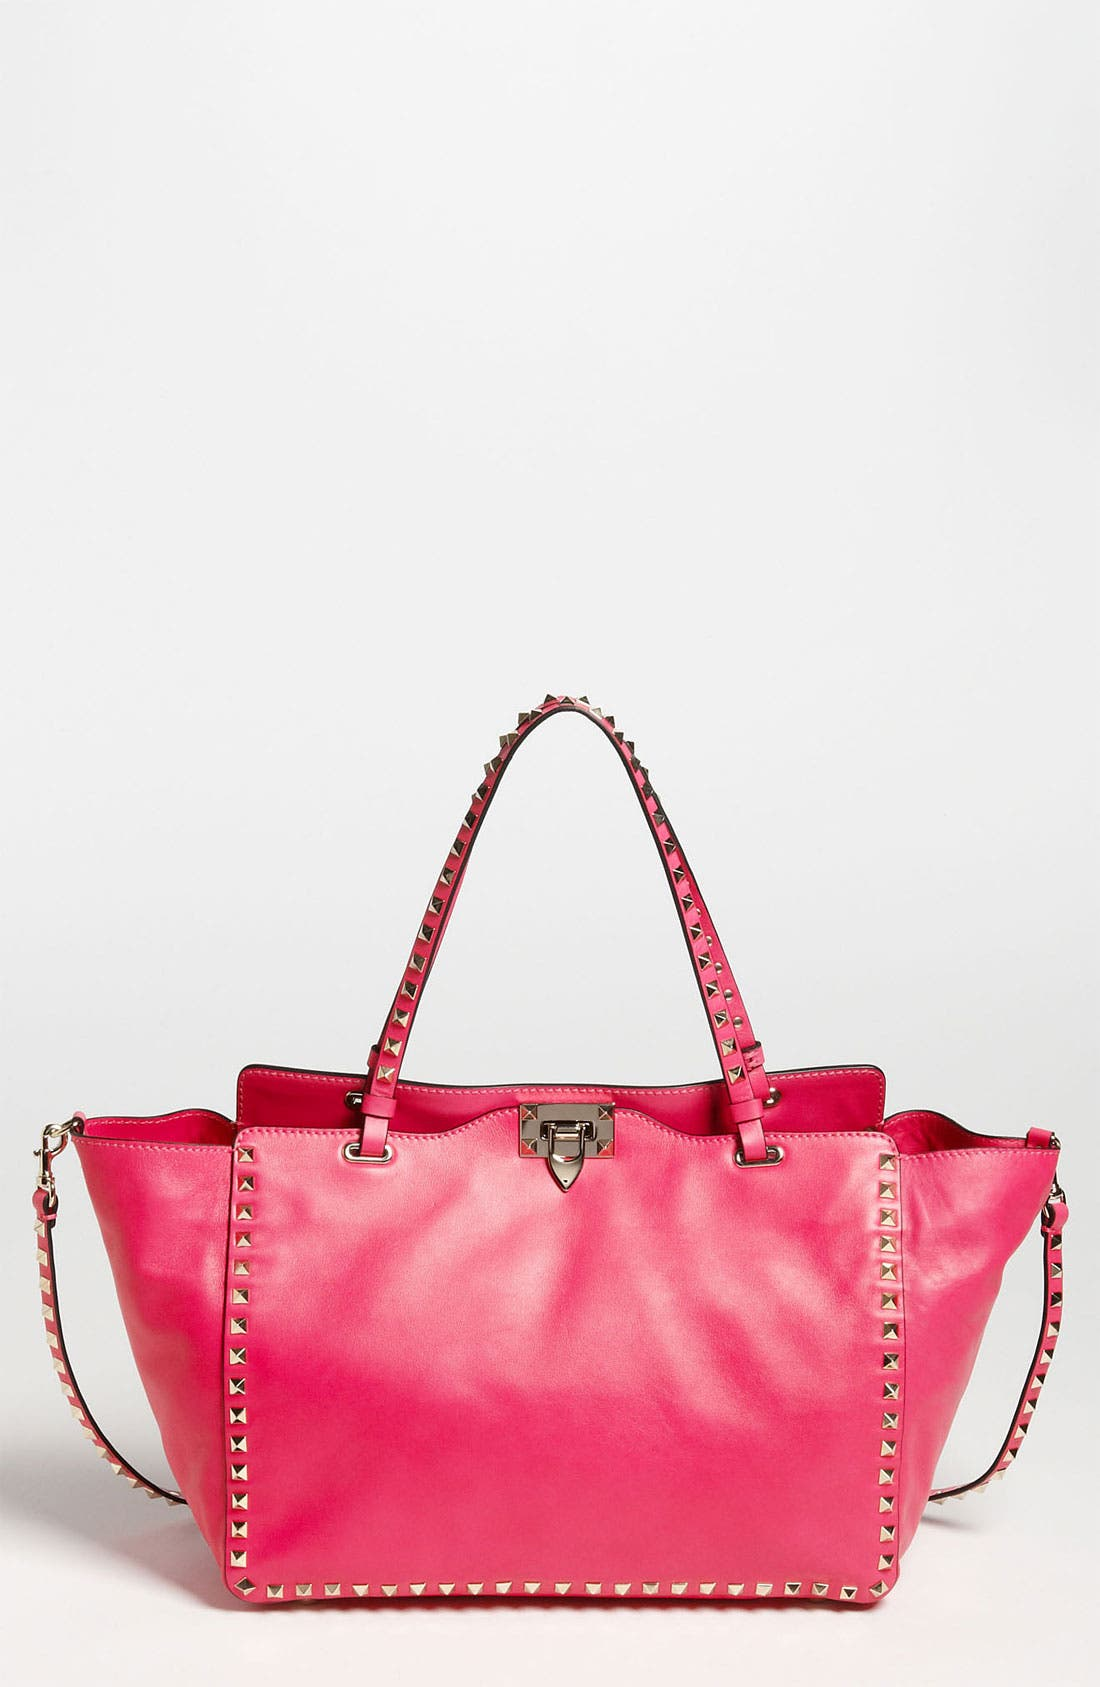 Main Image - Valentino 'Rockstud - Medium' Double Handle Leather Tote